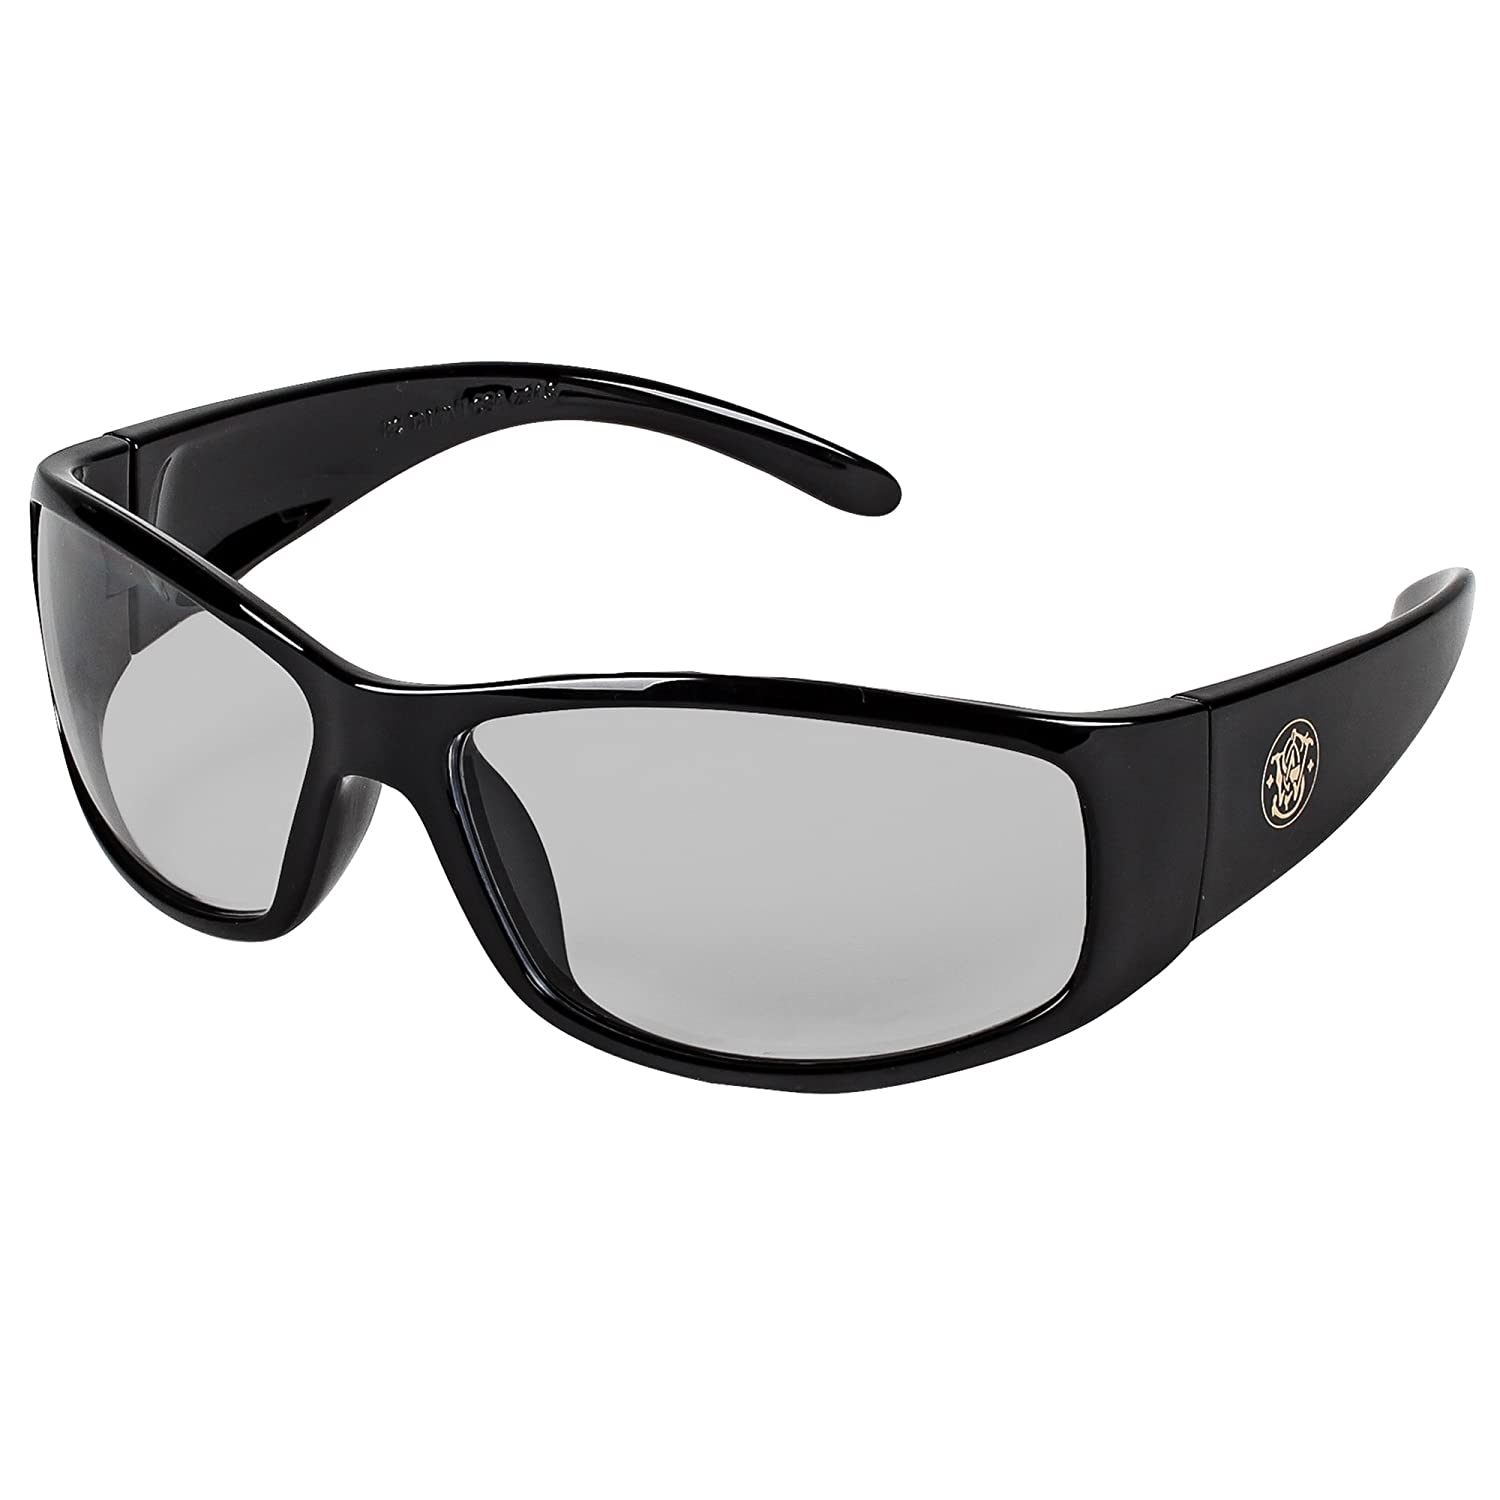 1619020f60e Smith and Wesson Safety Glasses (21306)